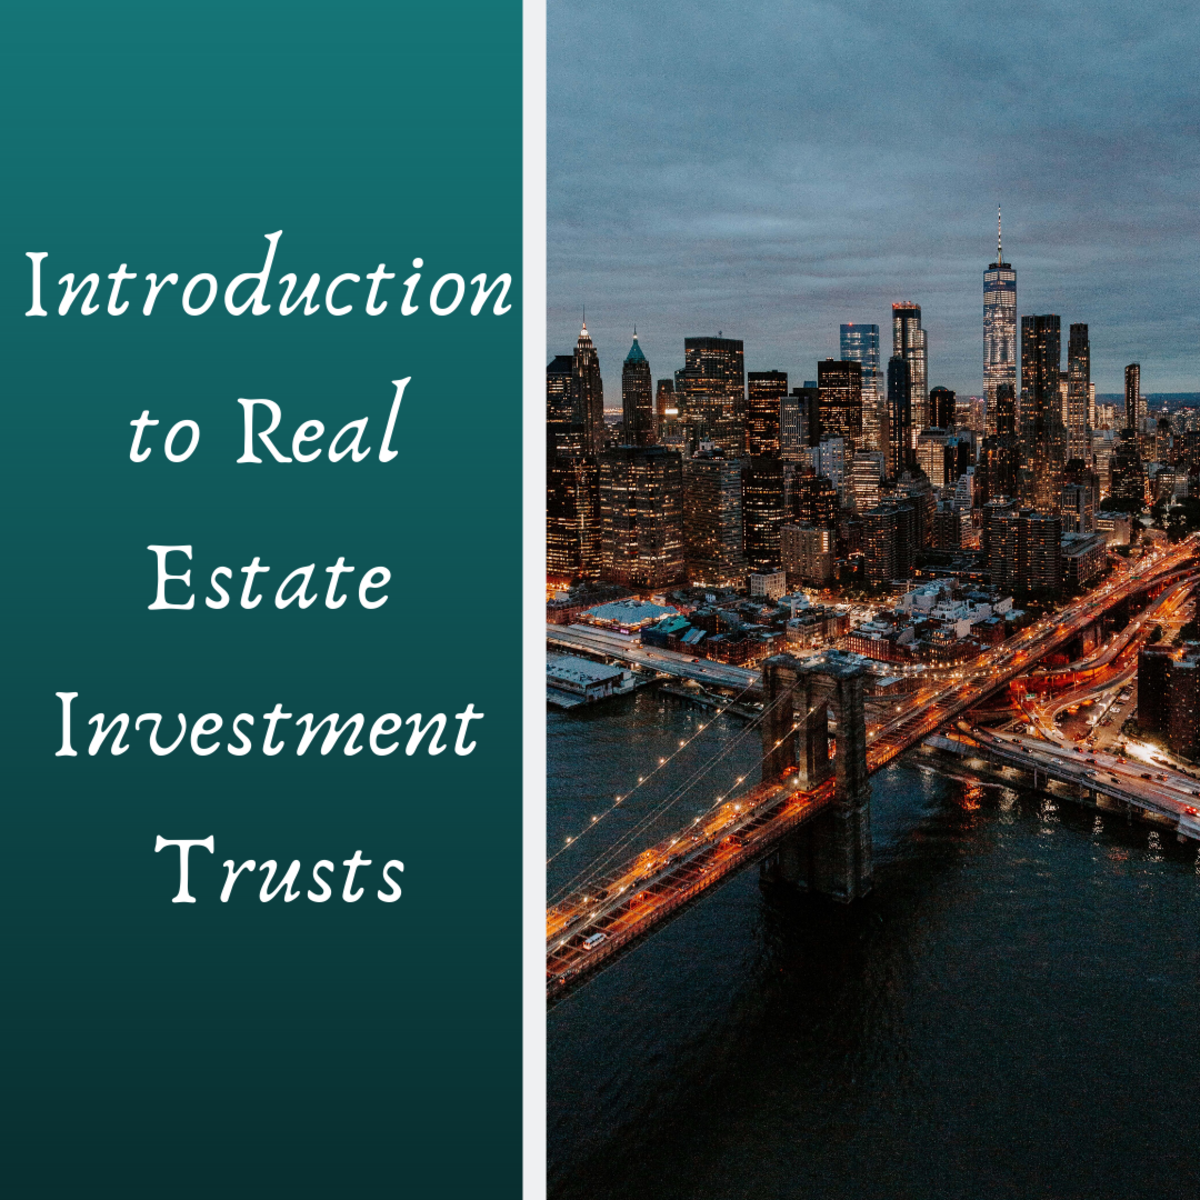 Introduction to Real Estate Investment Trusts (REIT) and Masters Limited Partnership (MLP)